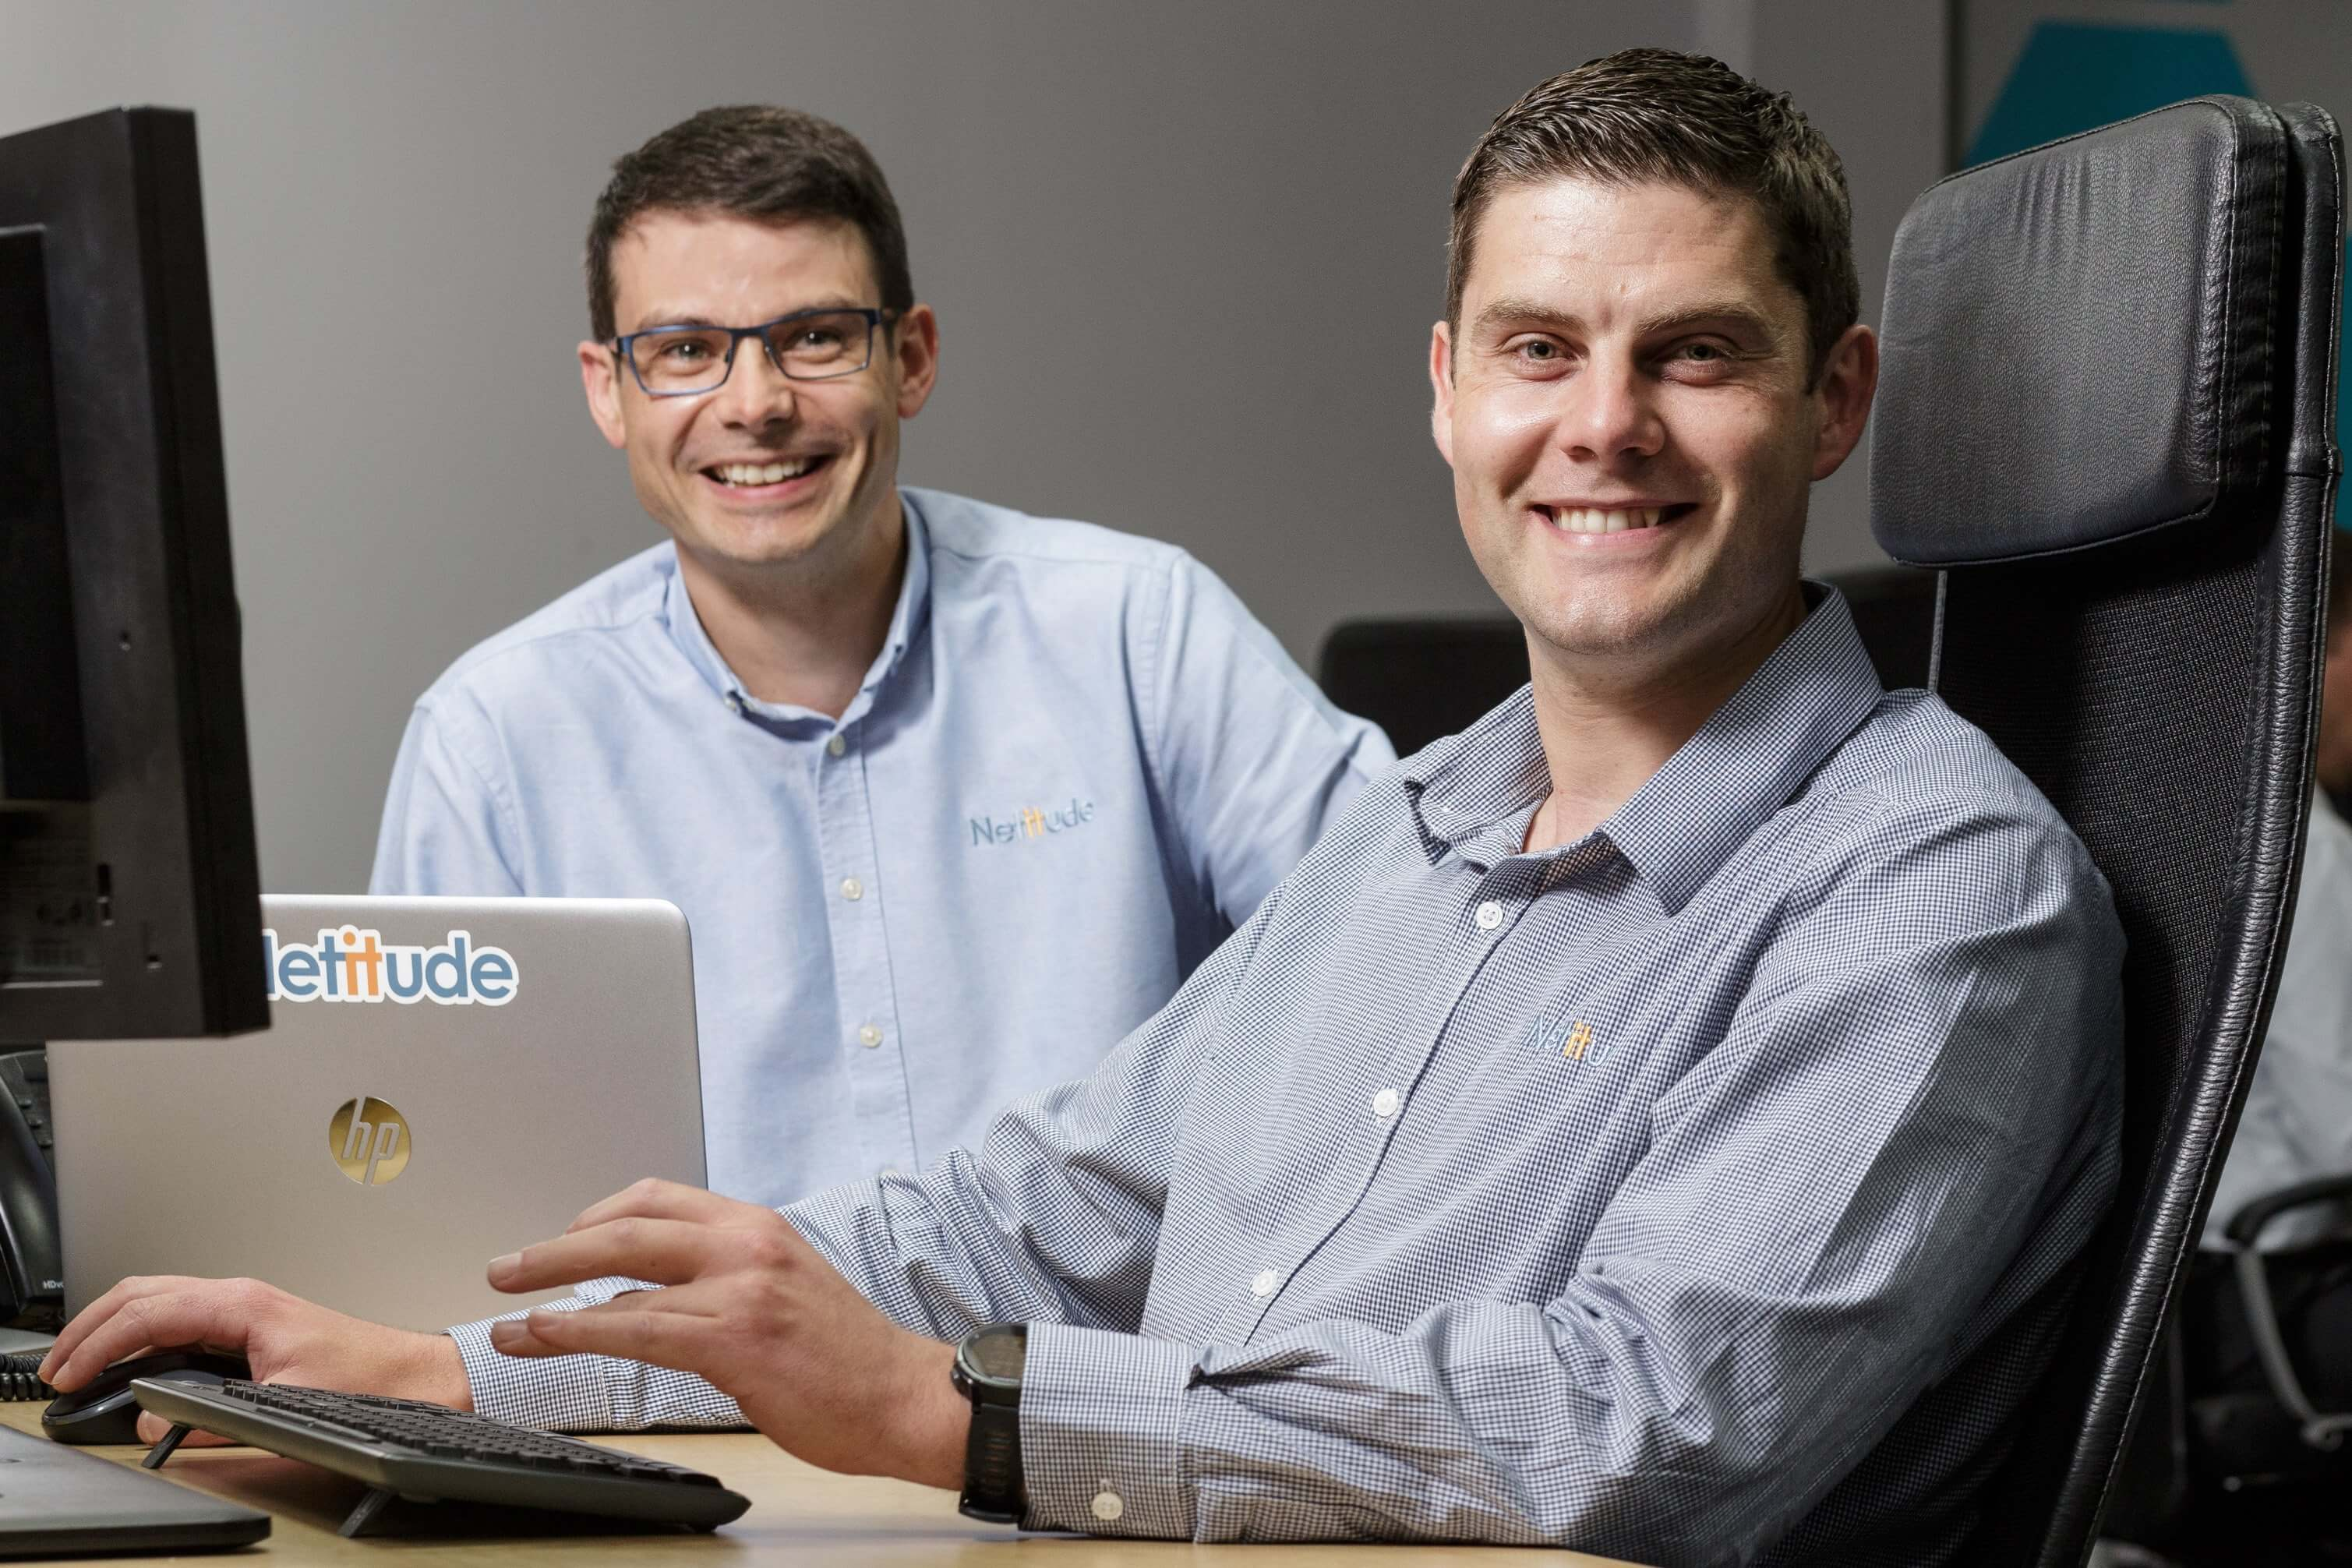 Service Delivery Director and Virtual IT Director working at a computer together, smiling at the camera